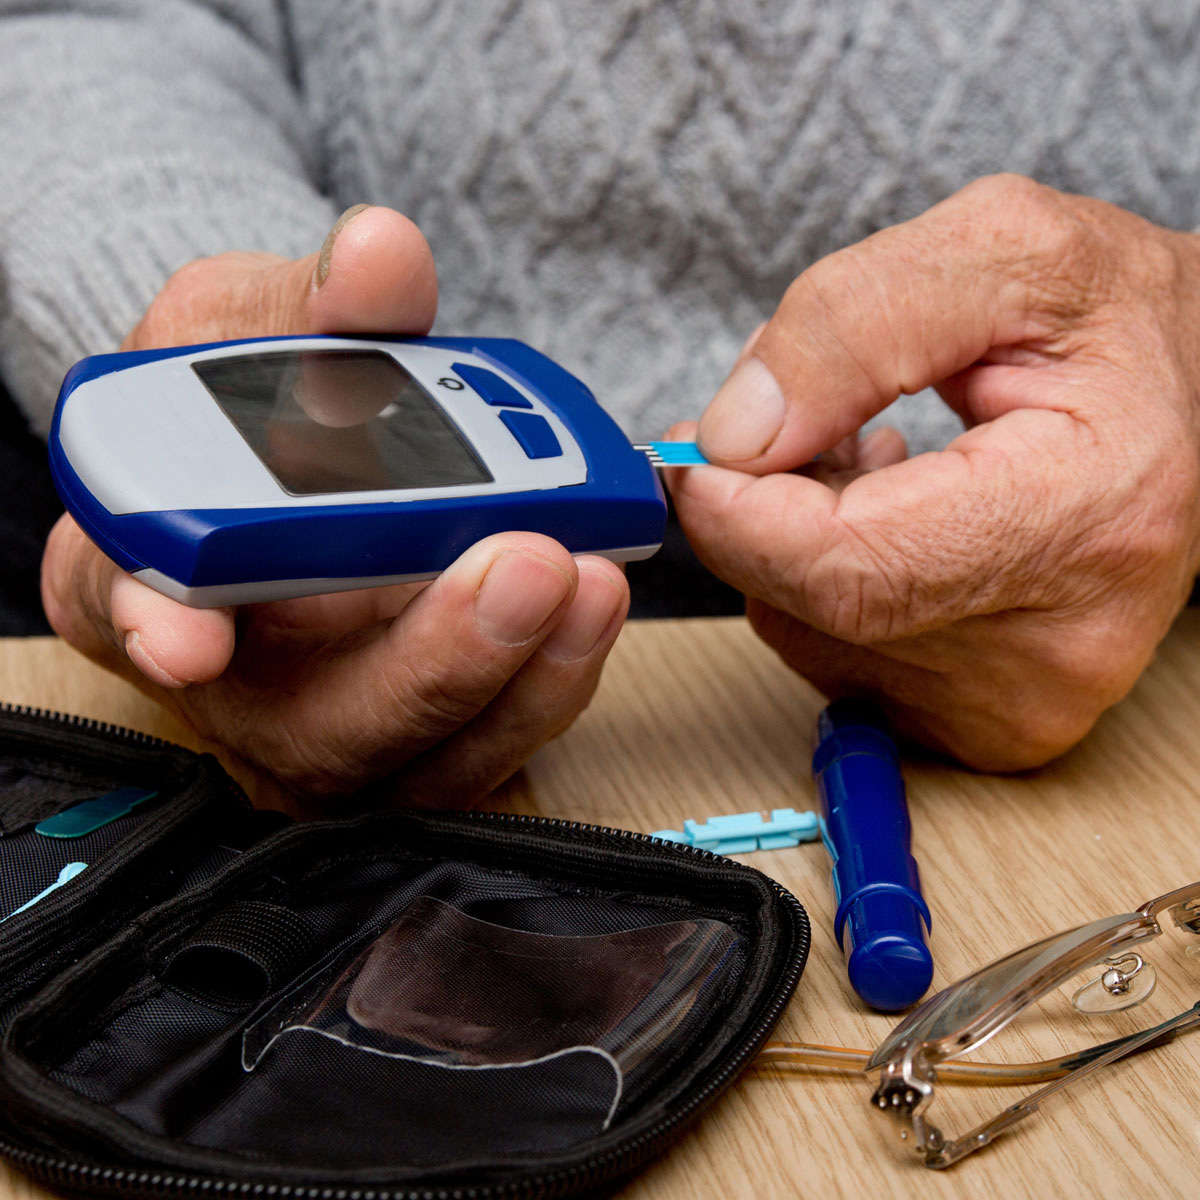 A patient tests their blood sugar levels.